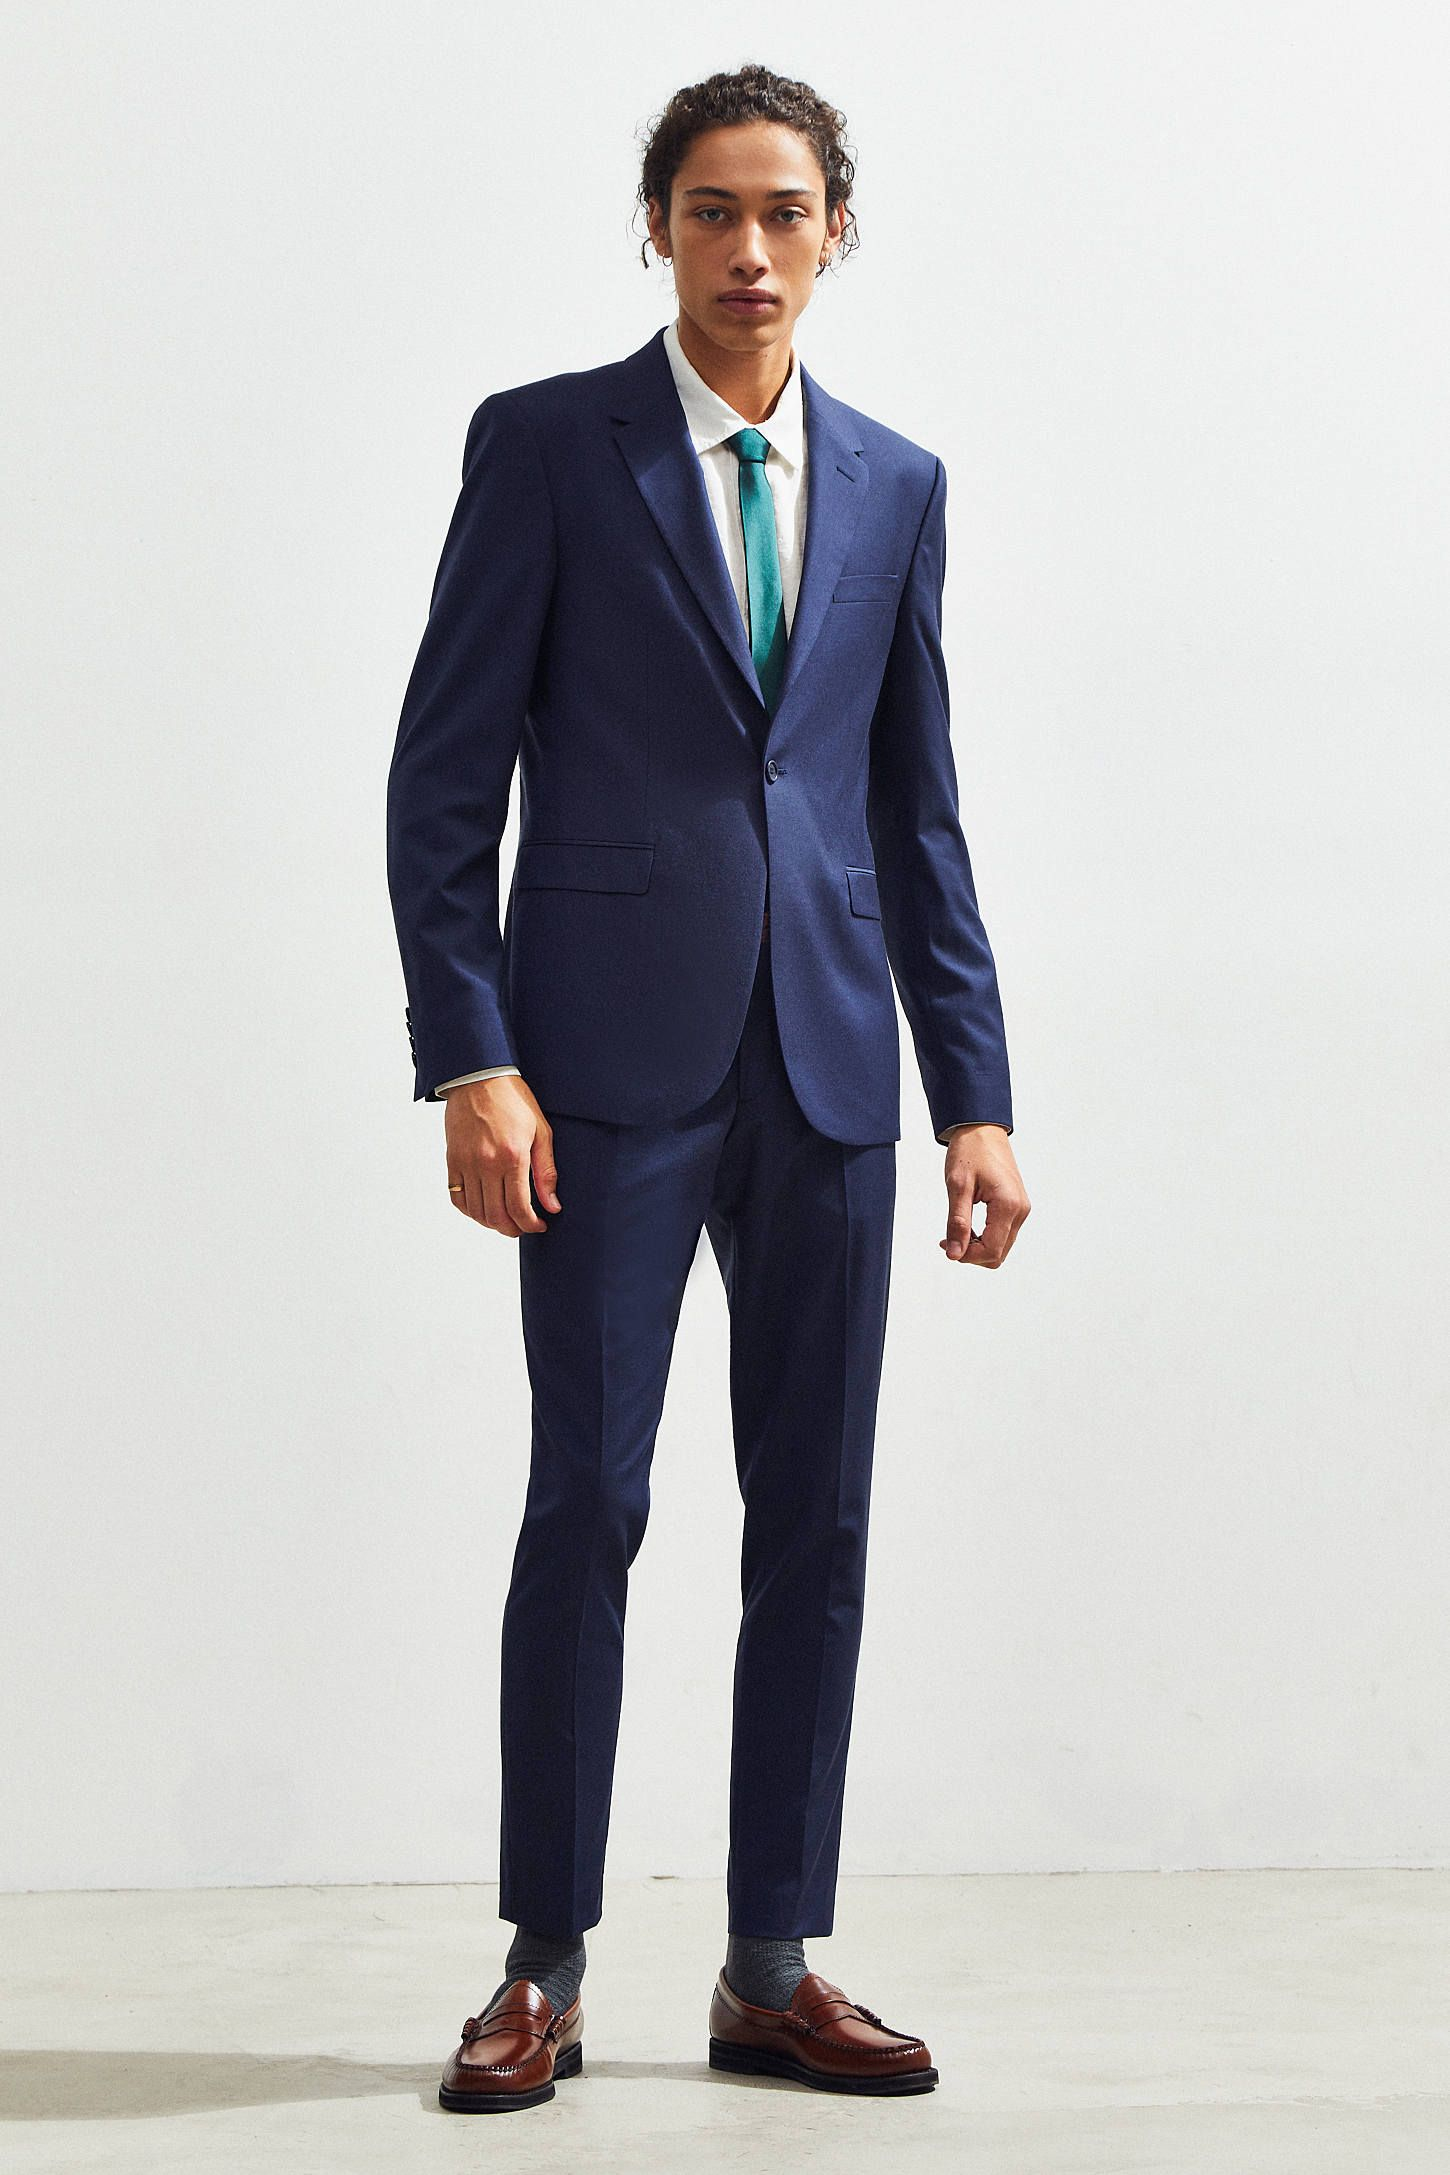 16 Best Prom Tuxedo and Suit Styles of 2019 , Cool Prom